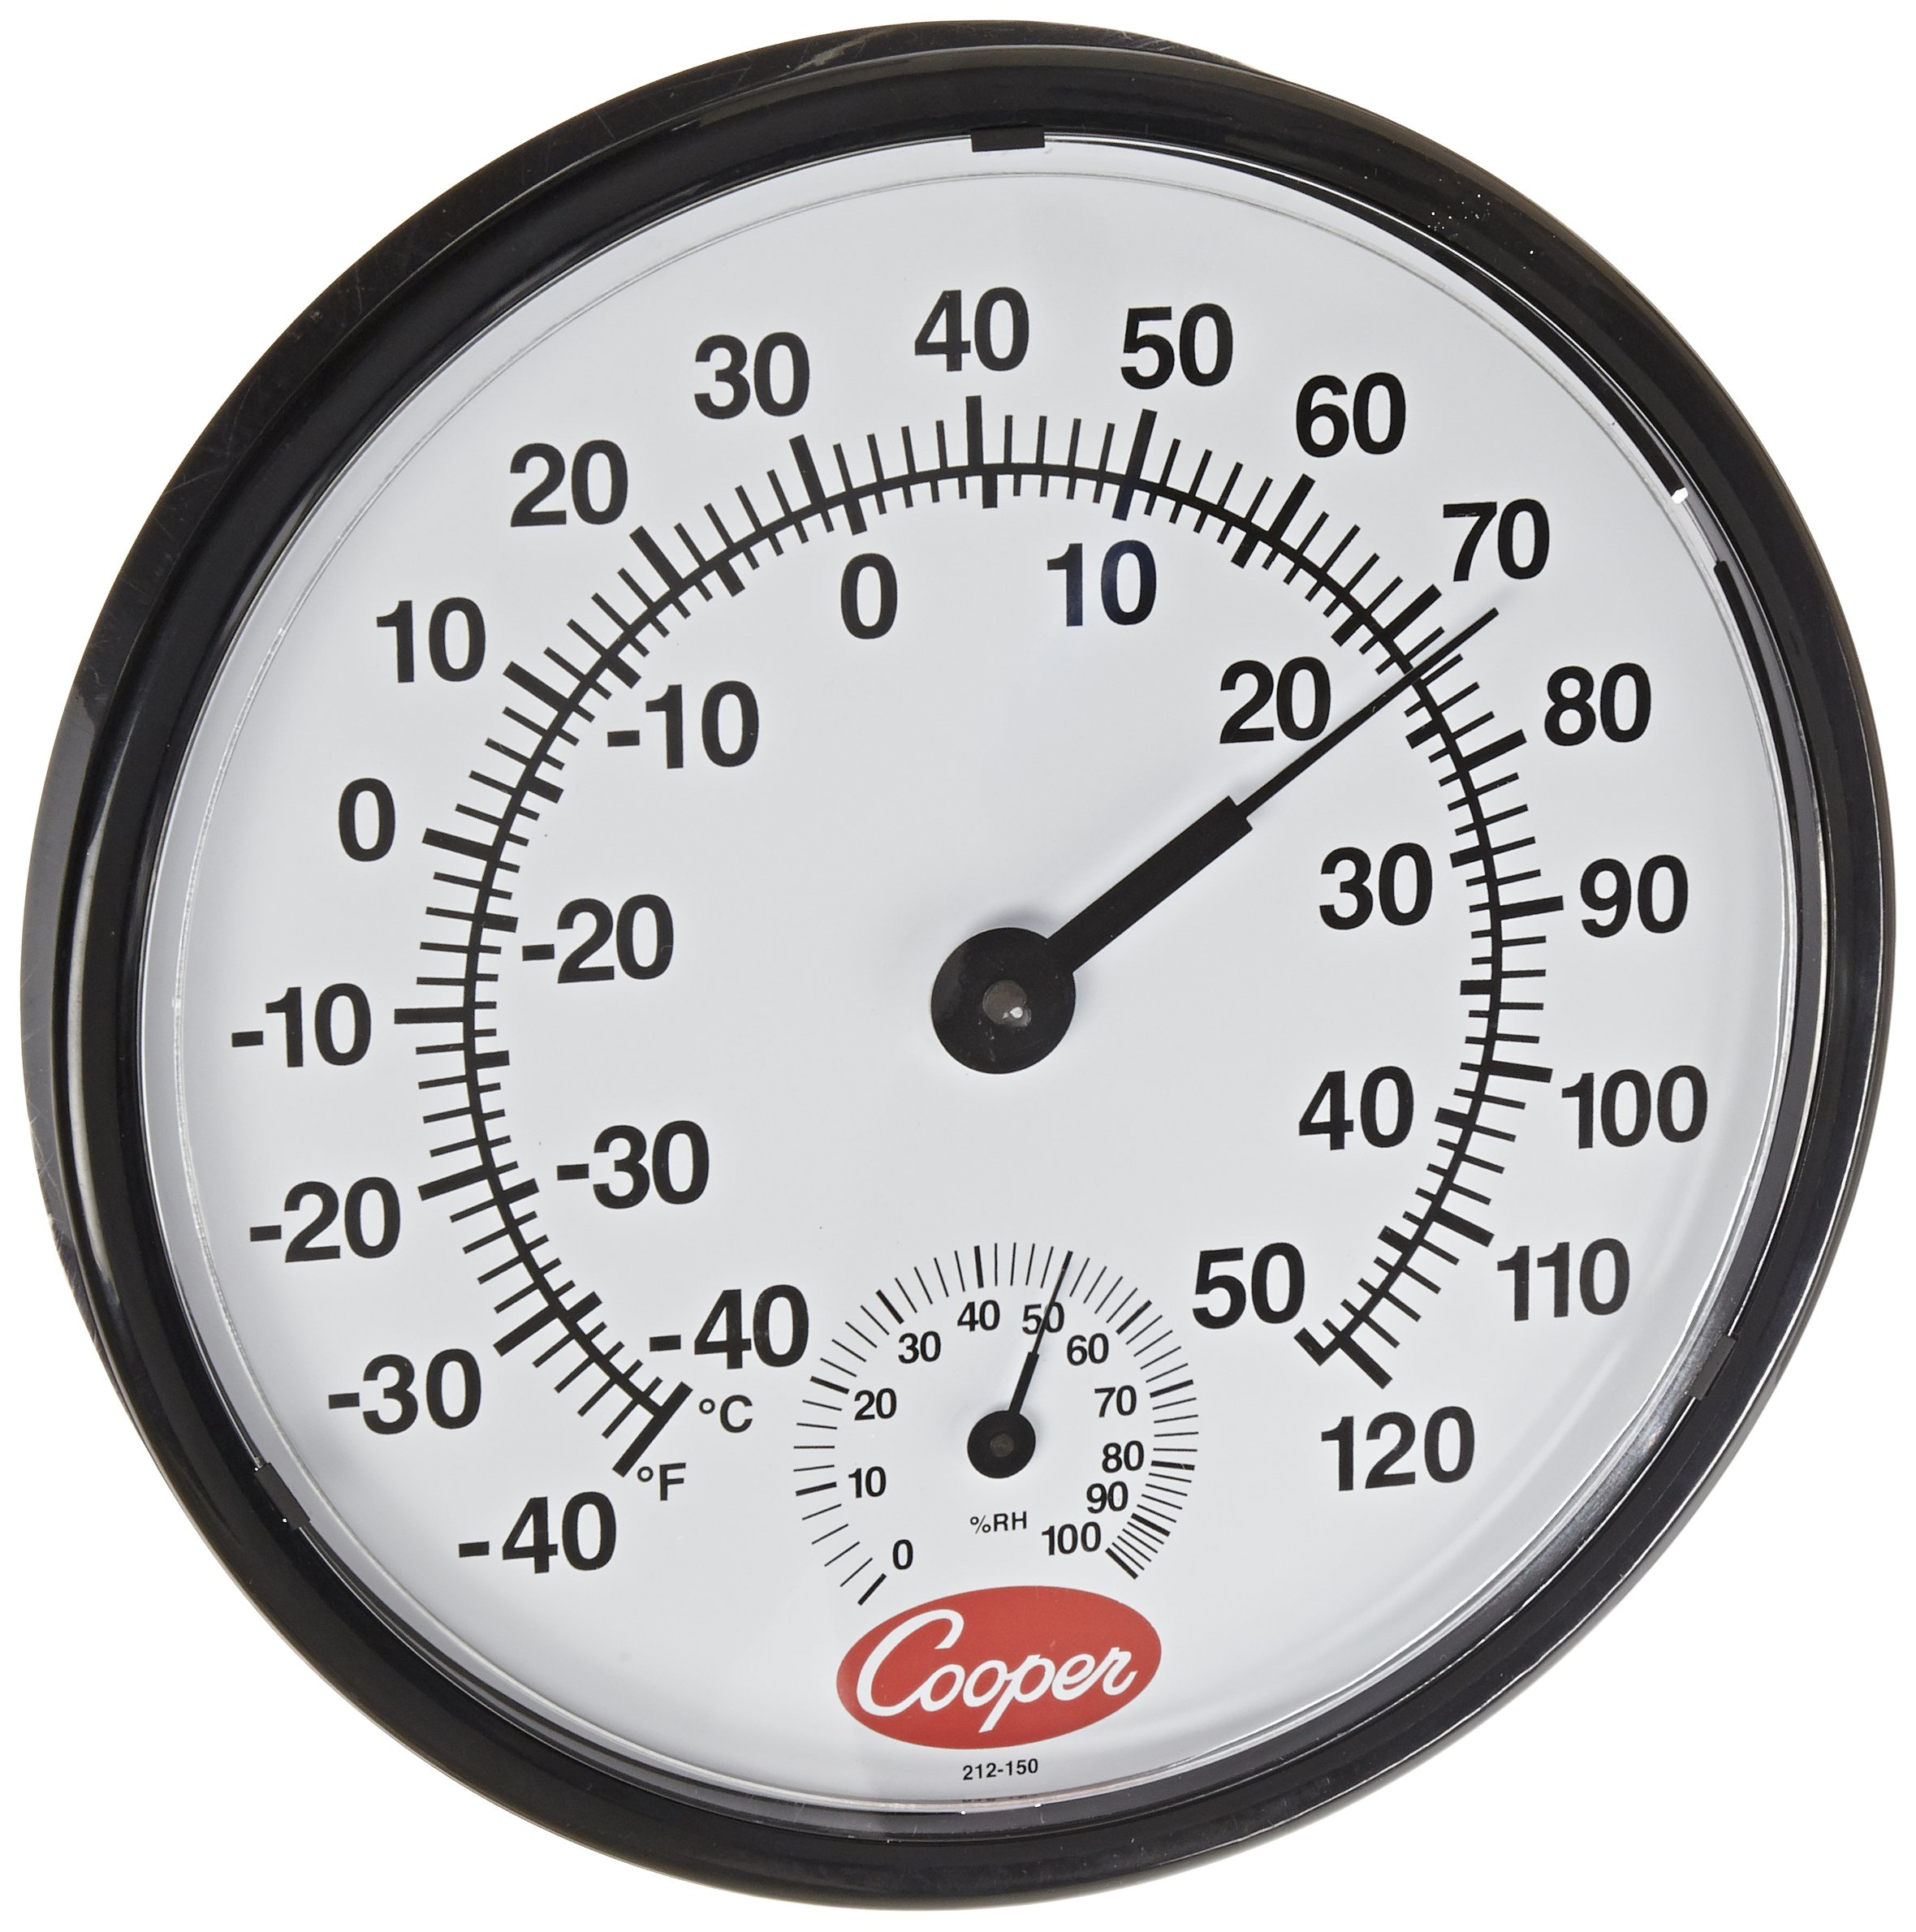 Cooper-Atkins 212-150-8 Bi-Metal Wall Mount Thermometer with Plastic Lens, Humidity Meter, -40/50°C Temperature Range by Cooper